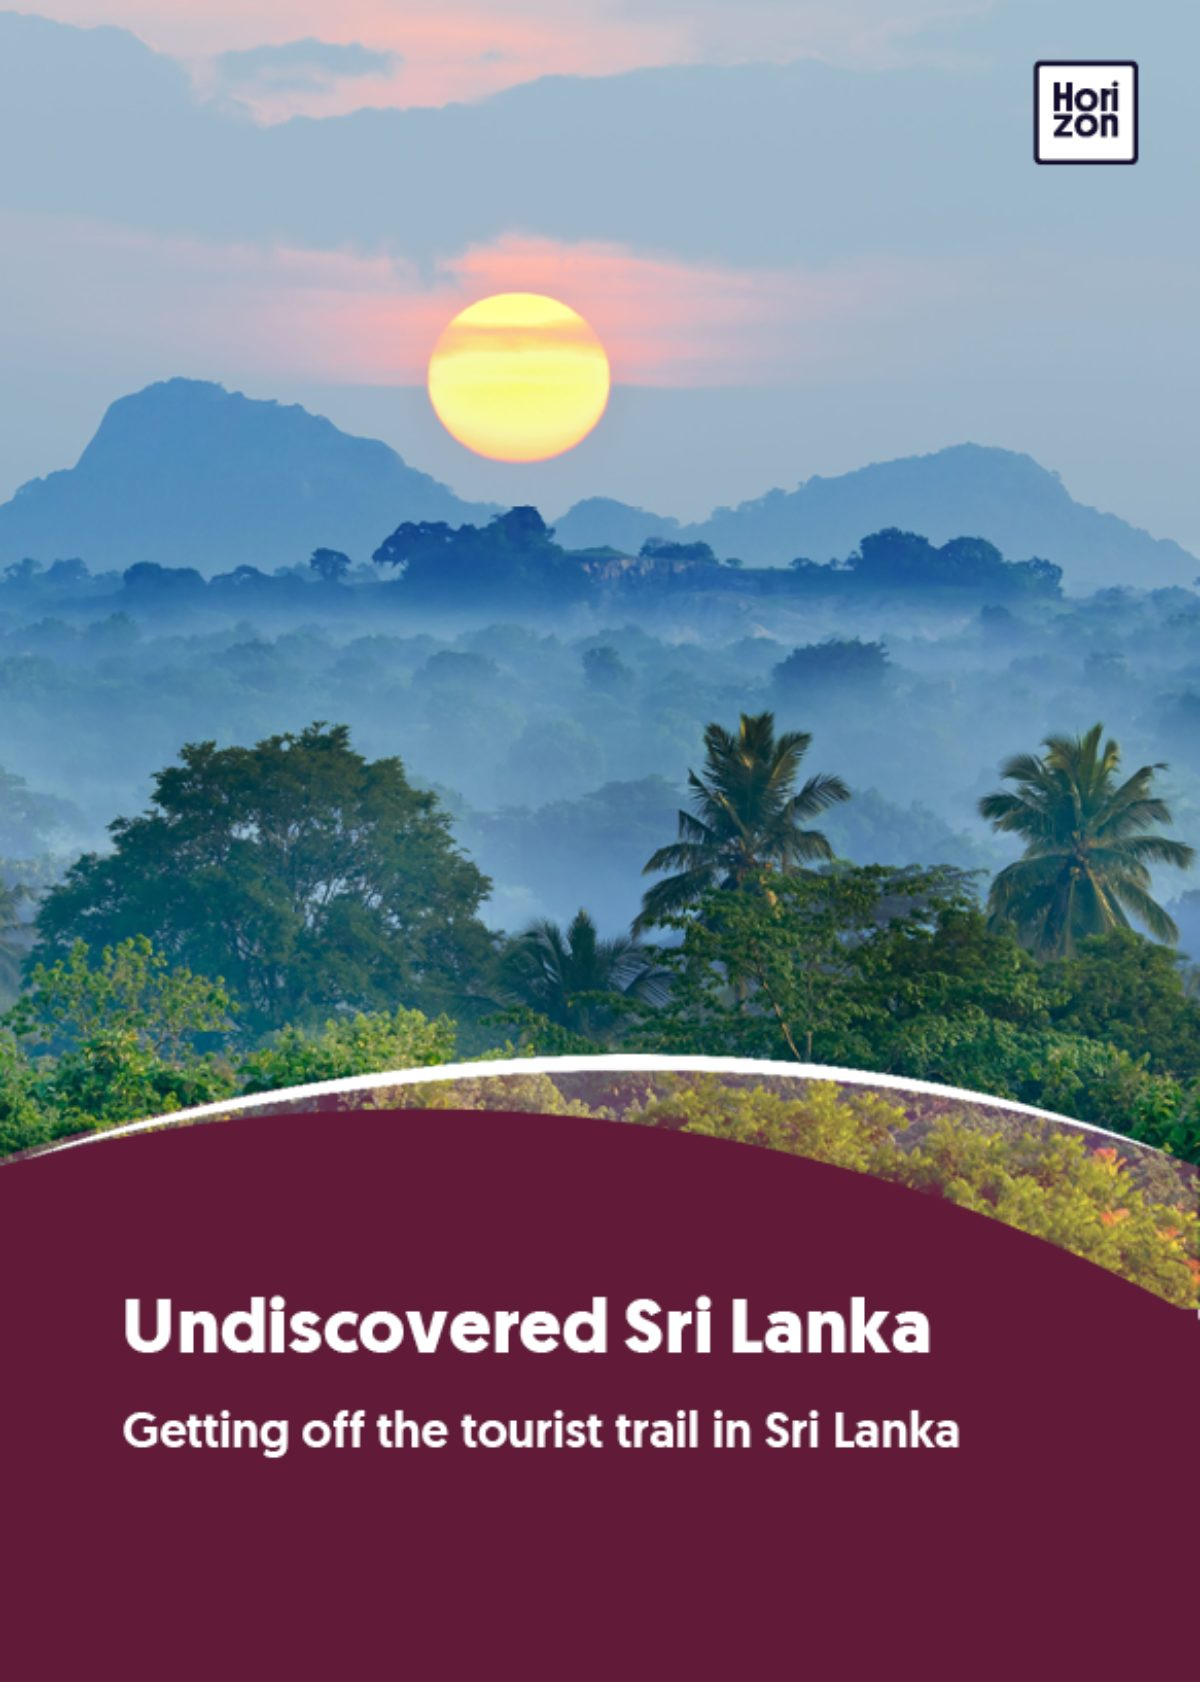 Undiscovered Sri Lanka